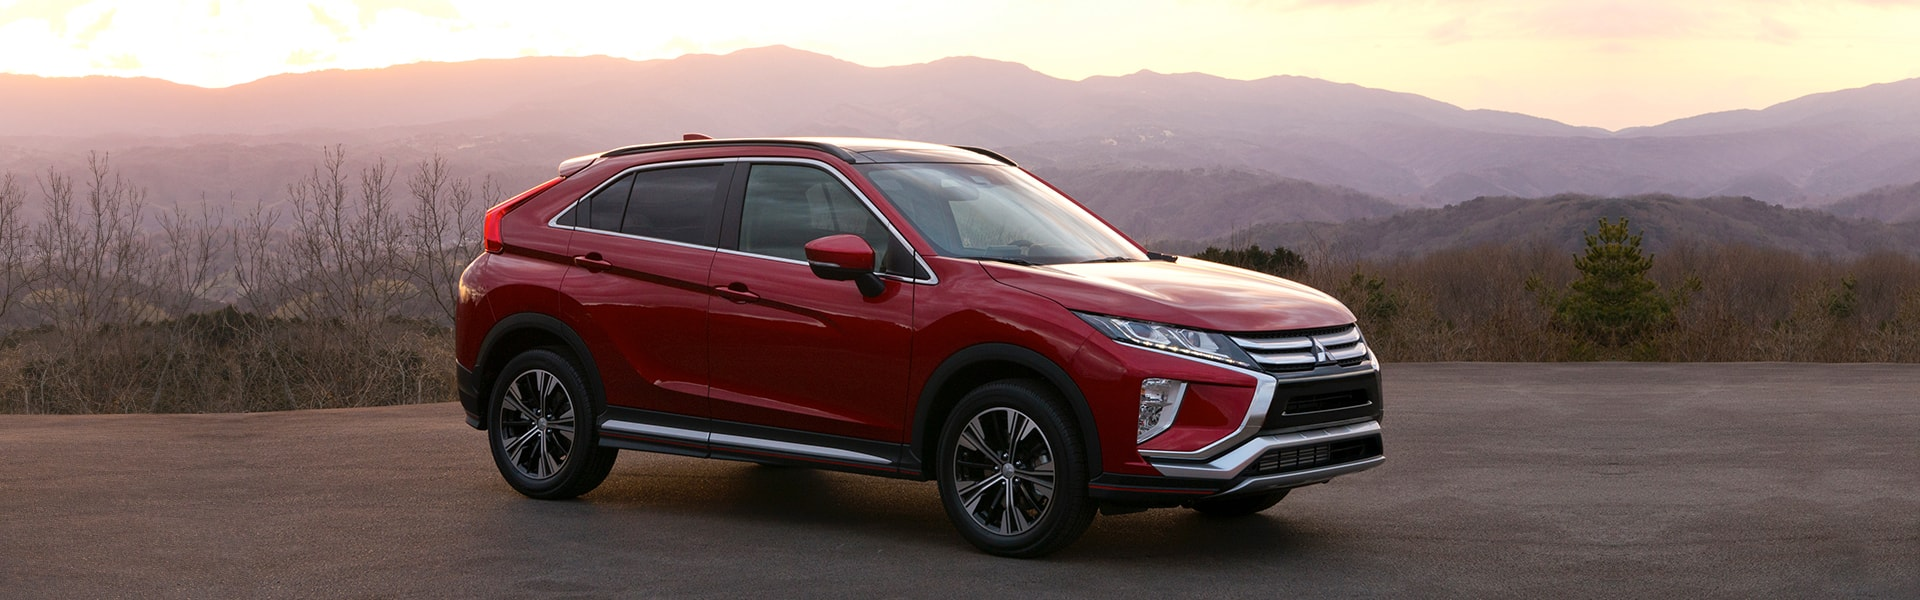 2018 mitsubishi eclipse cross. contemporary 2018 exterior sideview 2018 mitsubishi eclipse cross suv throughout mitsubishi eclipse cross e